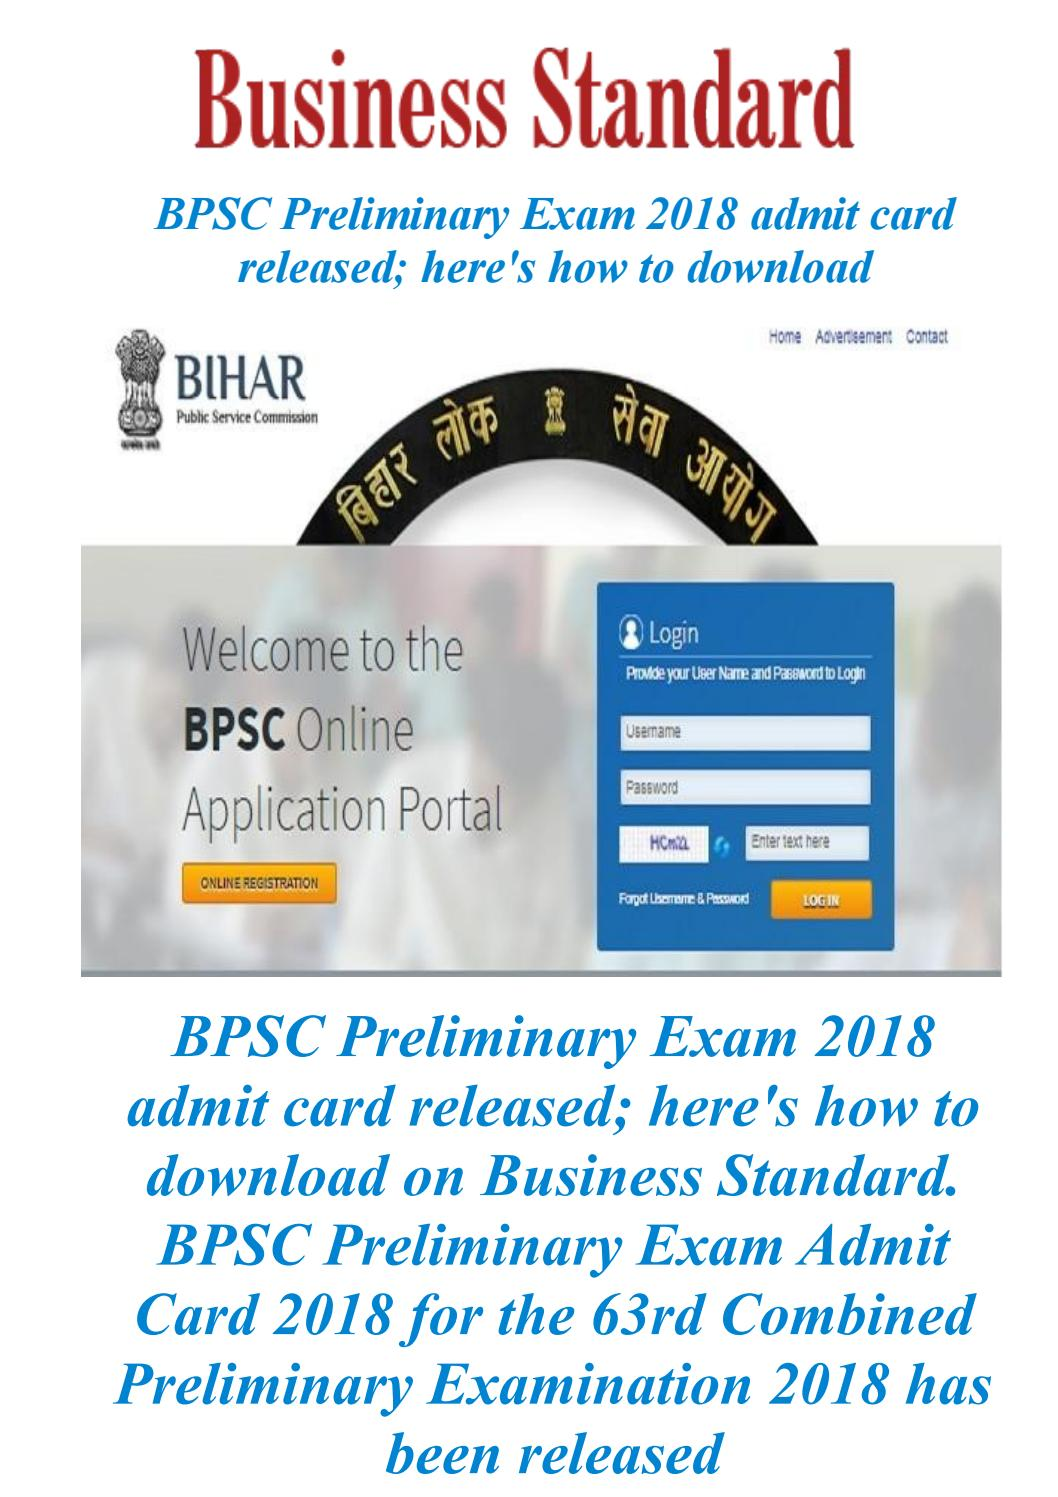 Bpsc preliminary exam 2018 admit card released